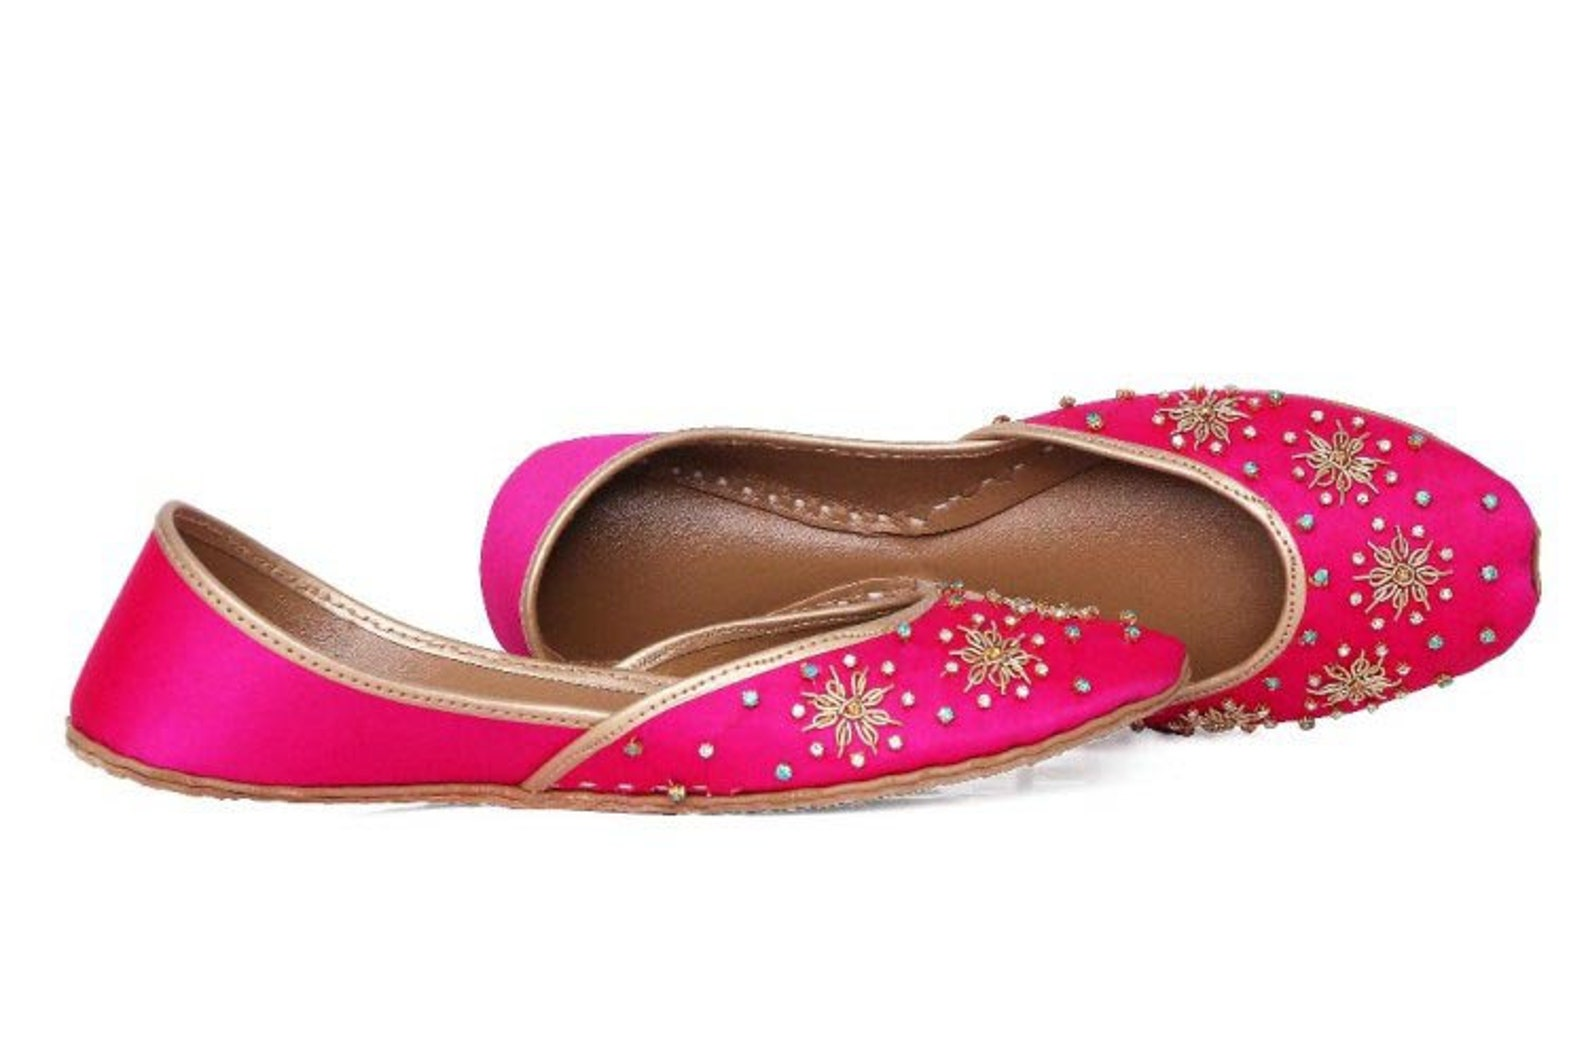 boho hand embroidered handmade pink ballet flat shoes pink slip ons